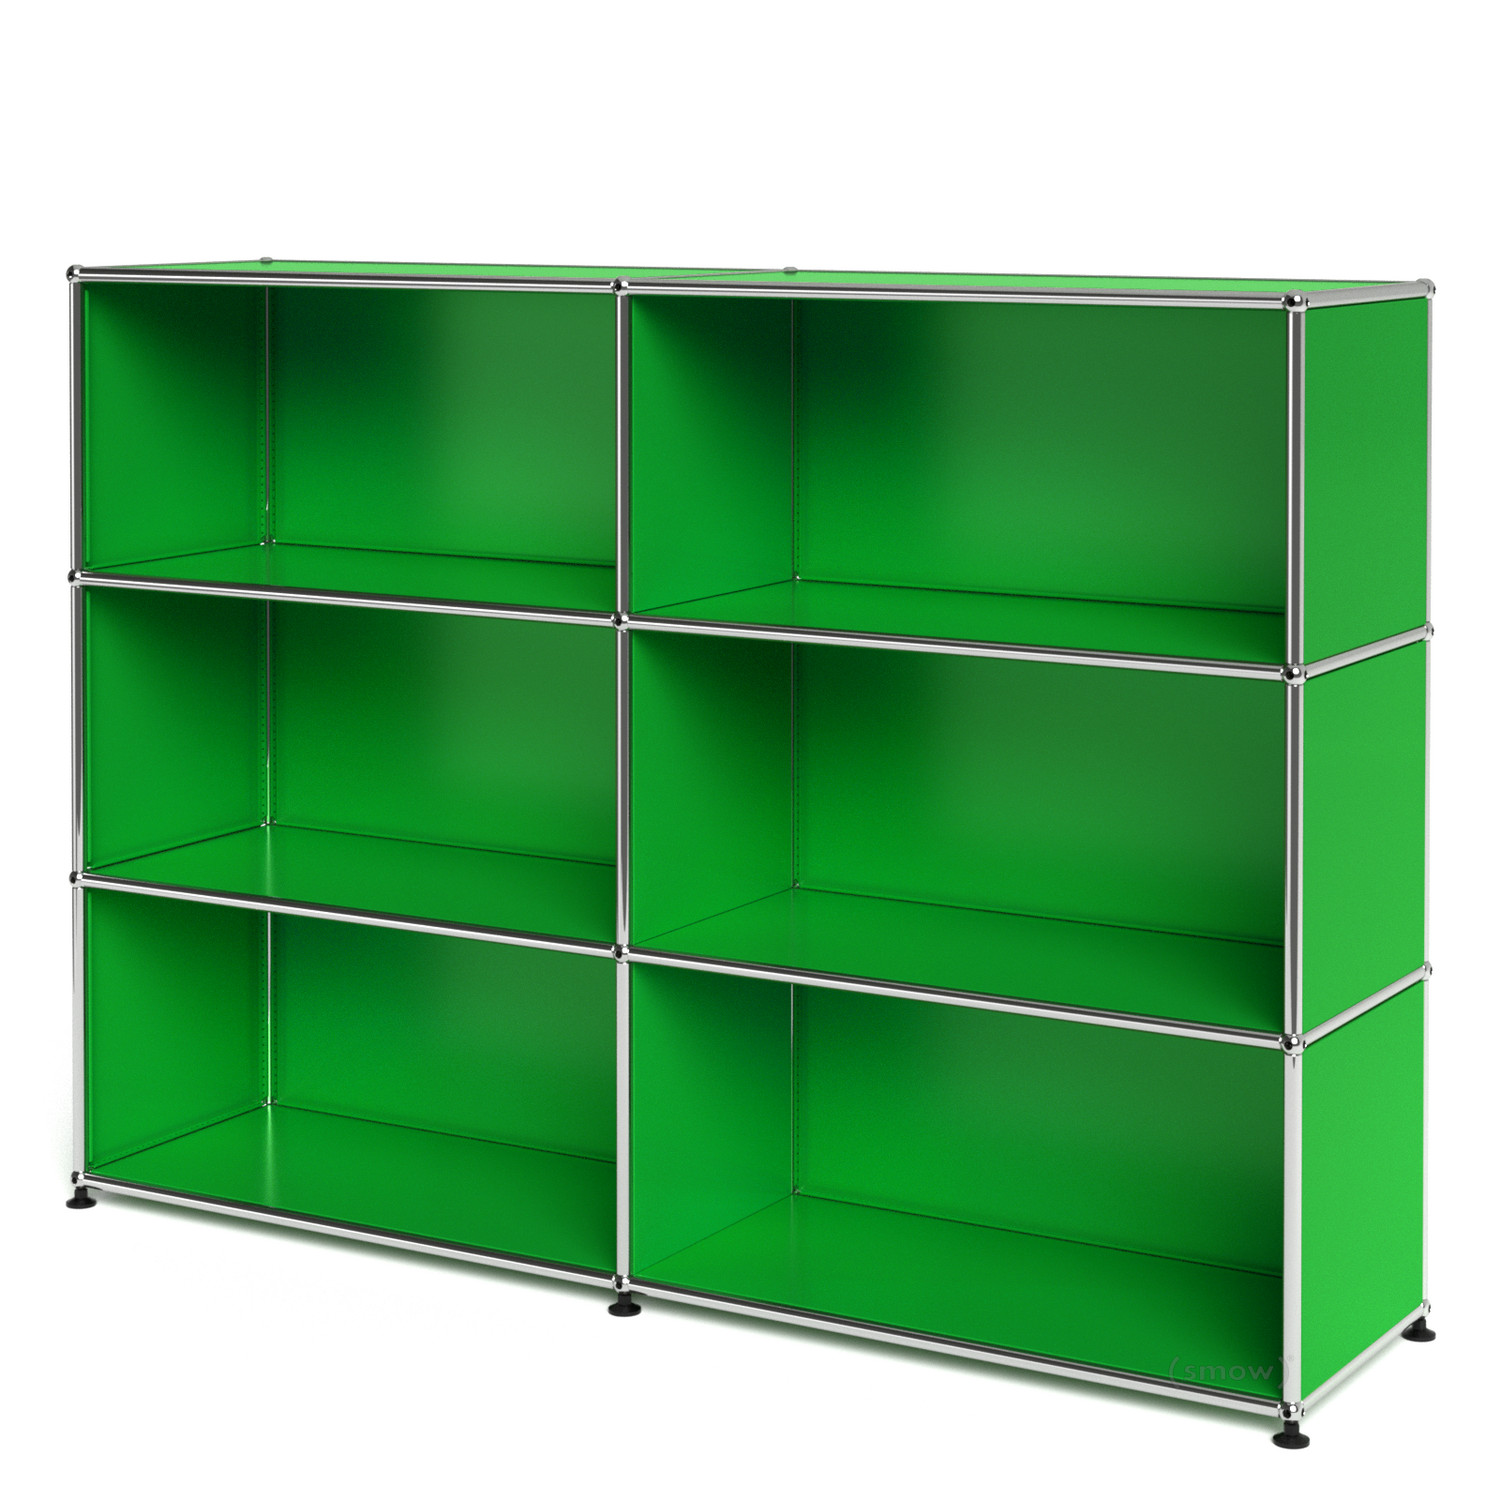 usm haller highboard l open usm green by fritz haller paul sch rer designer furniture by. Black Bedroom Furniture Sets. Home Design Ideas